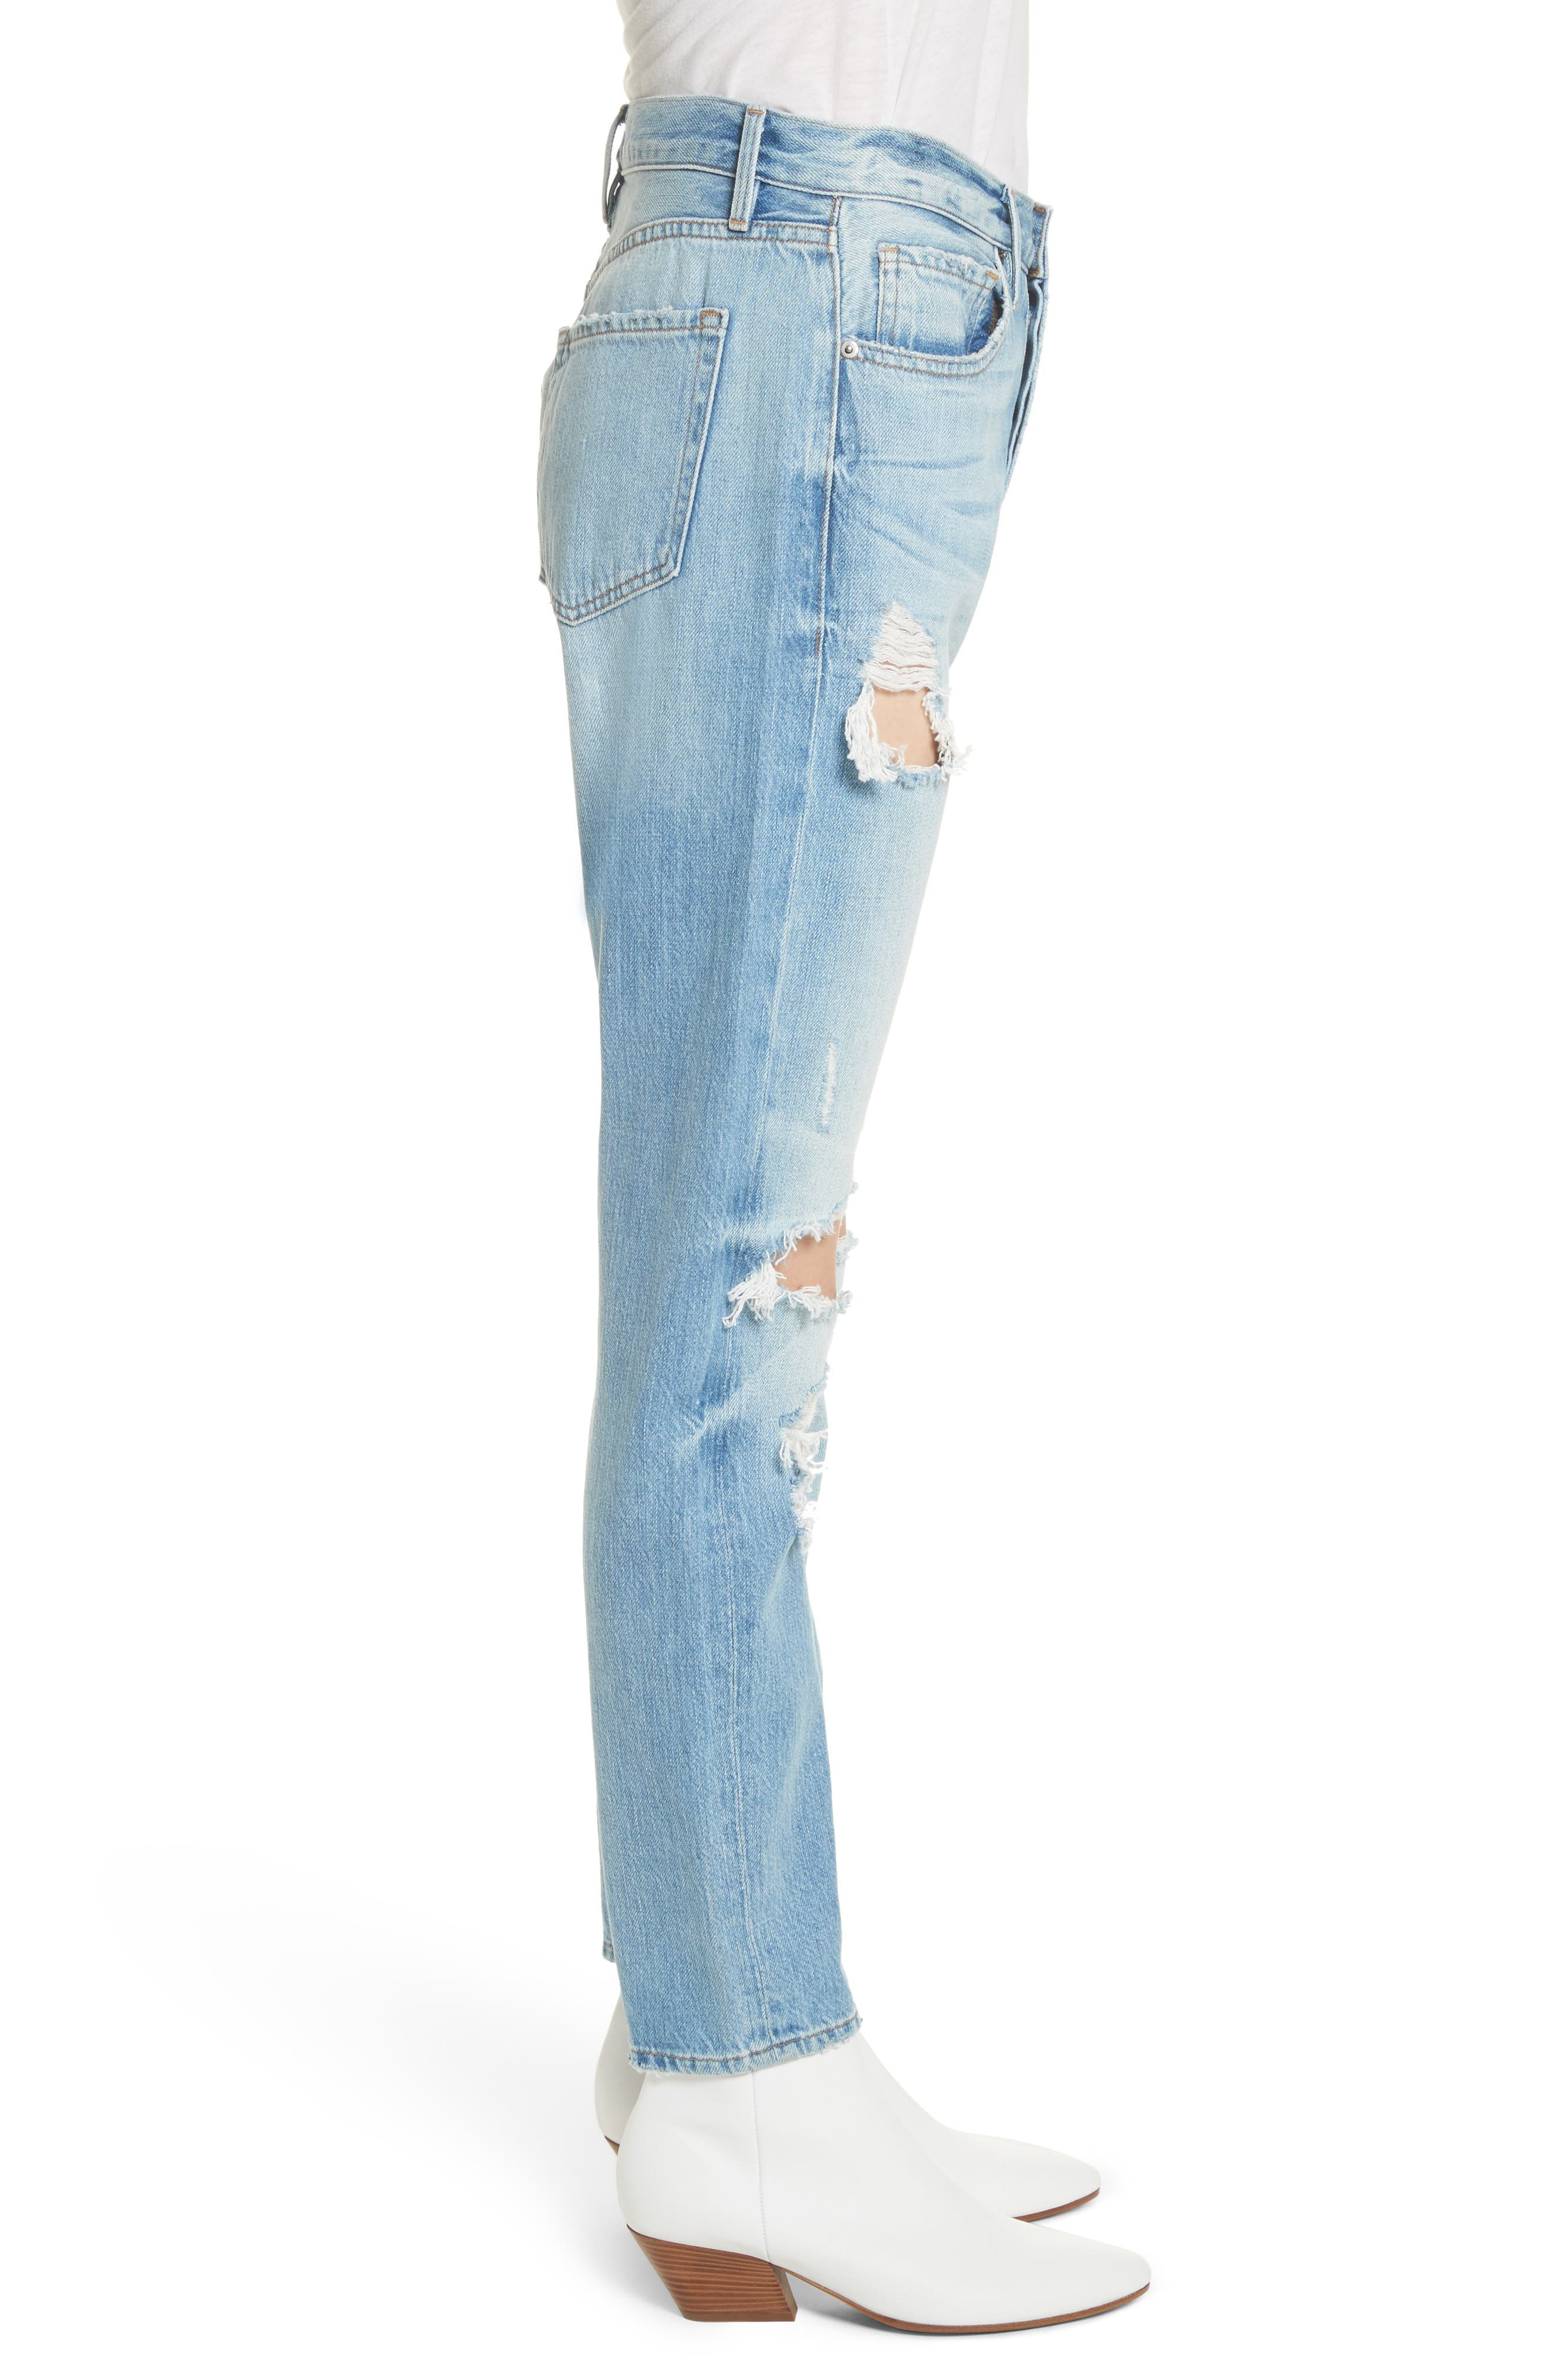 Le Original Ripped High Waist Skinny Jeans,                             Alternate thumbnail 3, color,                             POMDALE